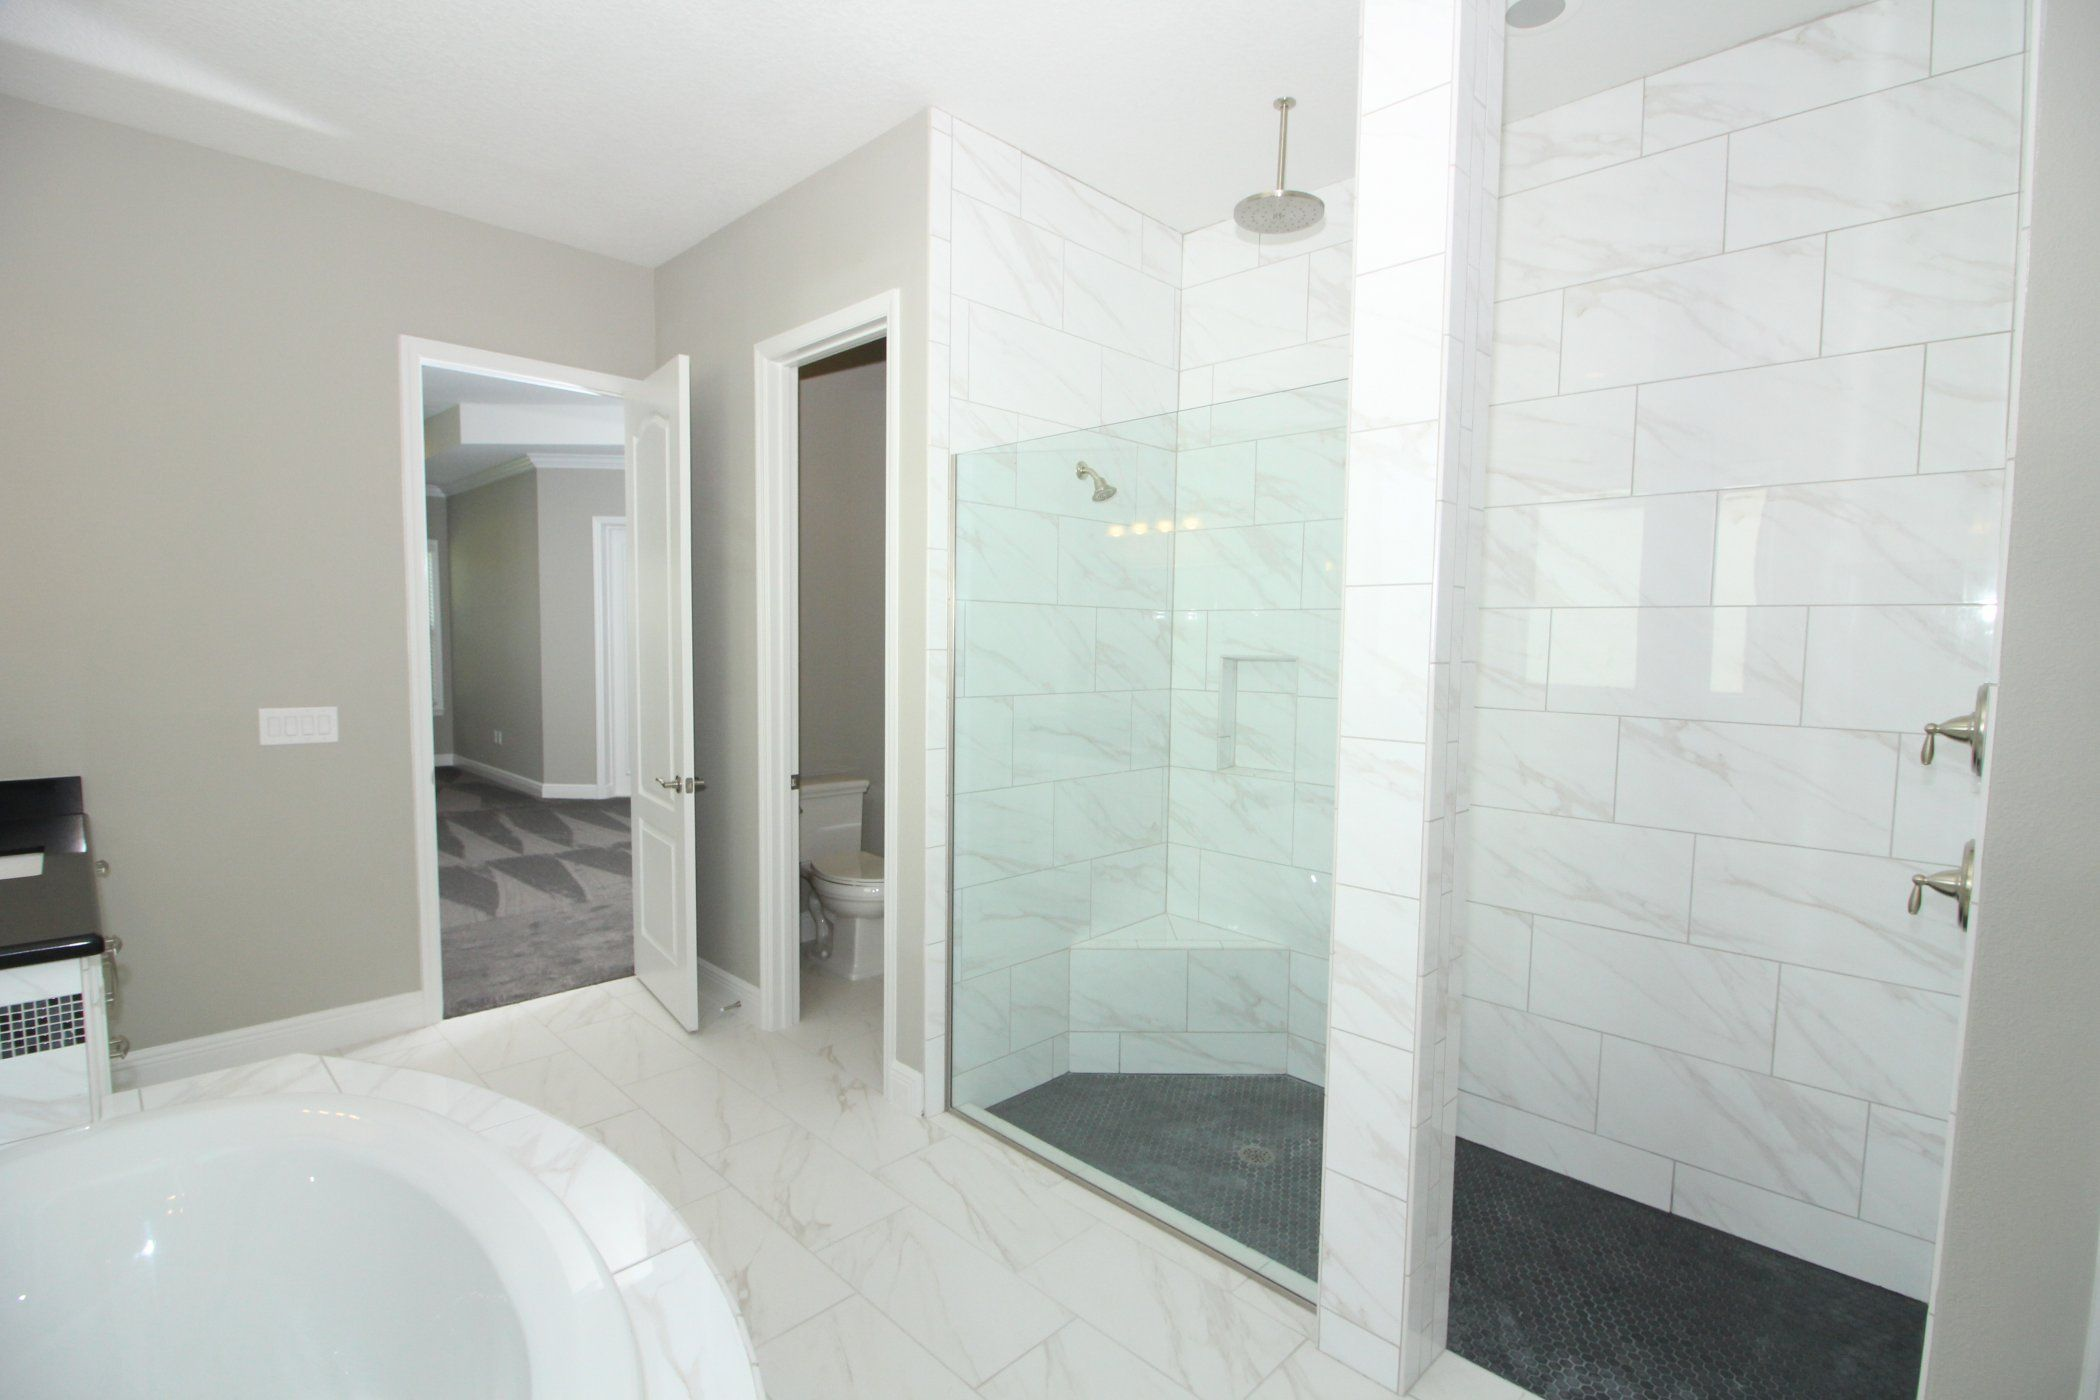 Bathroom featured in the Monte Carlo Plan By Taylor Morrison in Orlando, FL